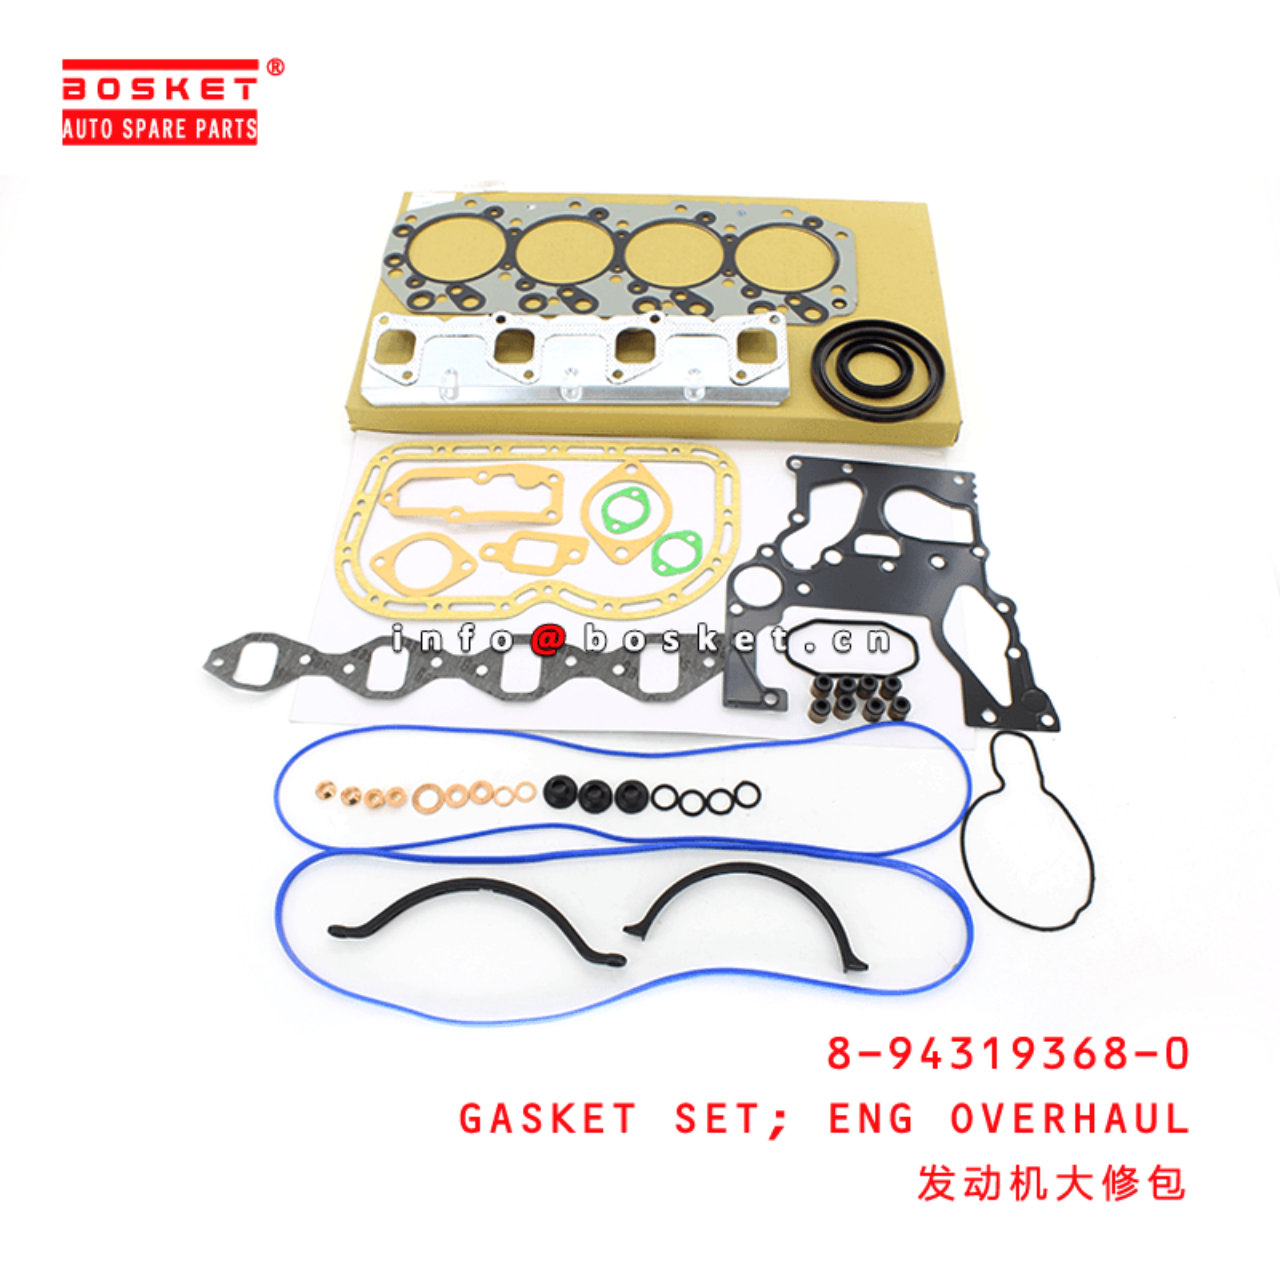 8-94319368-0 Engine Overhaul Gasket Set 8943193680 Suitable for ISUZU 4JA1T